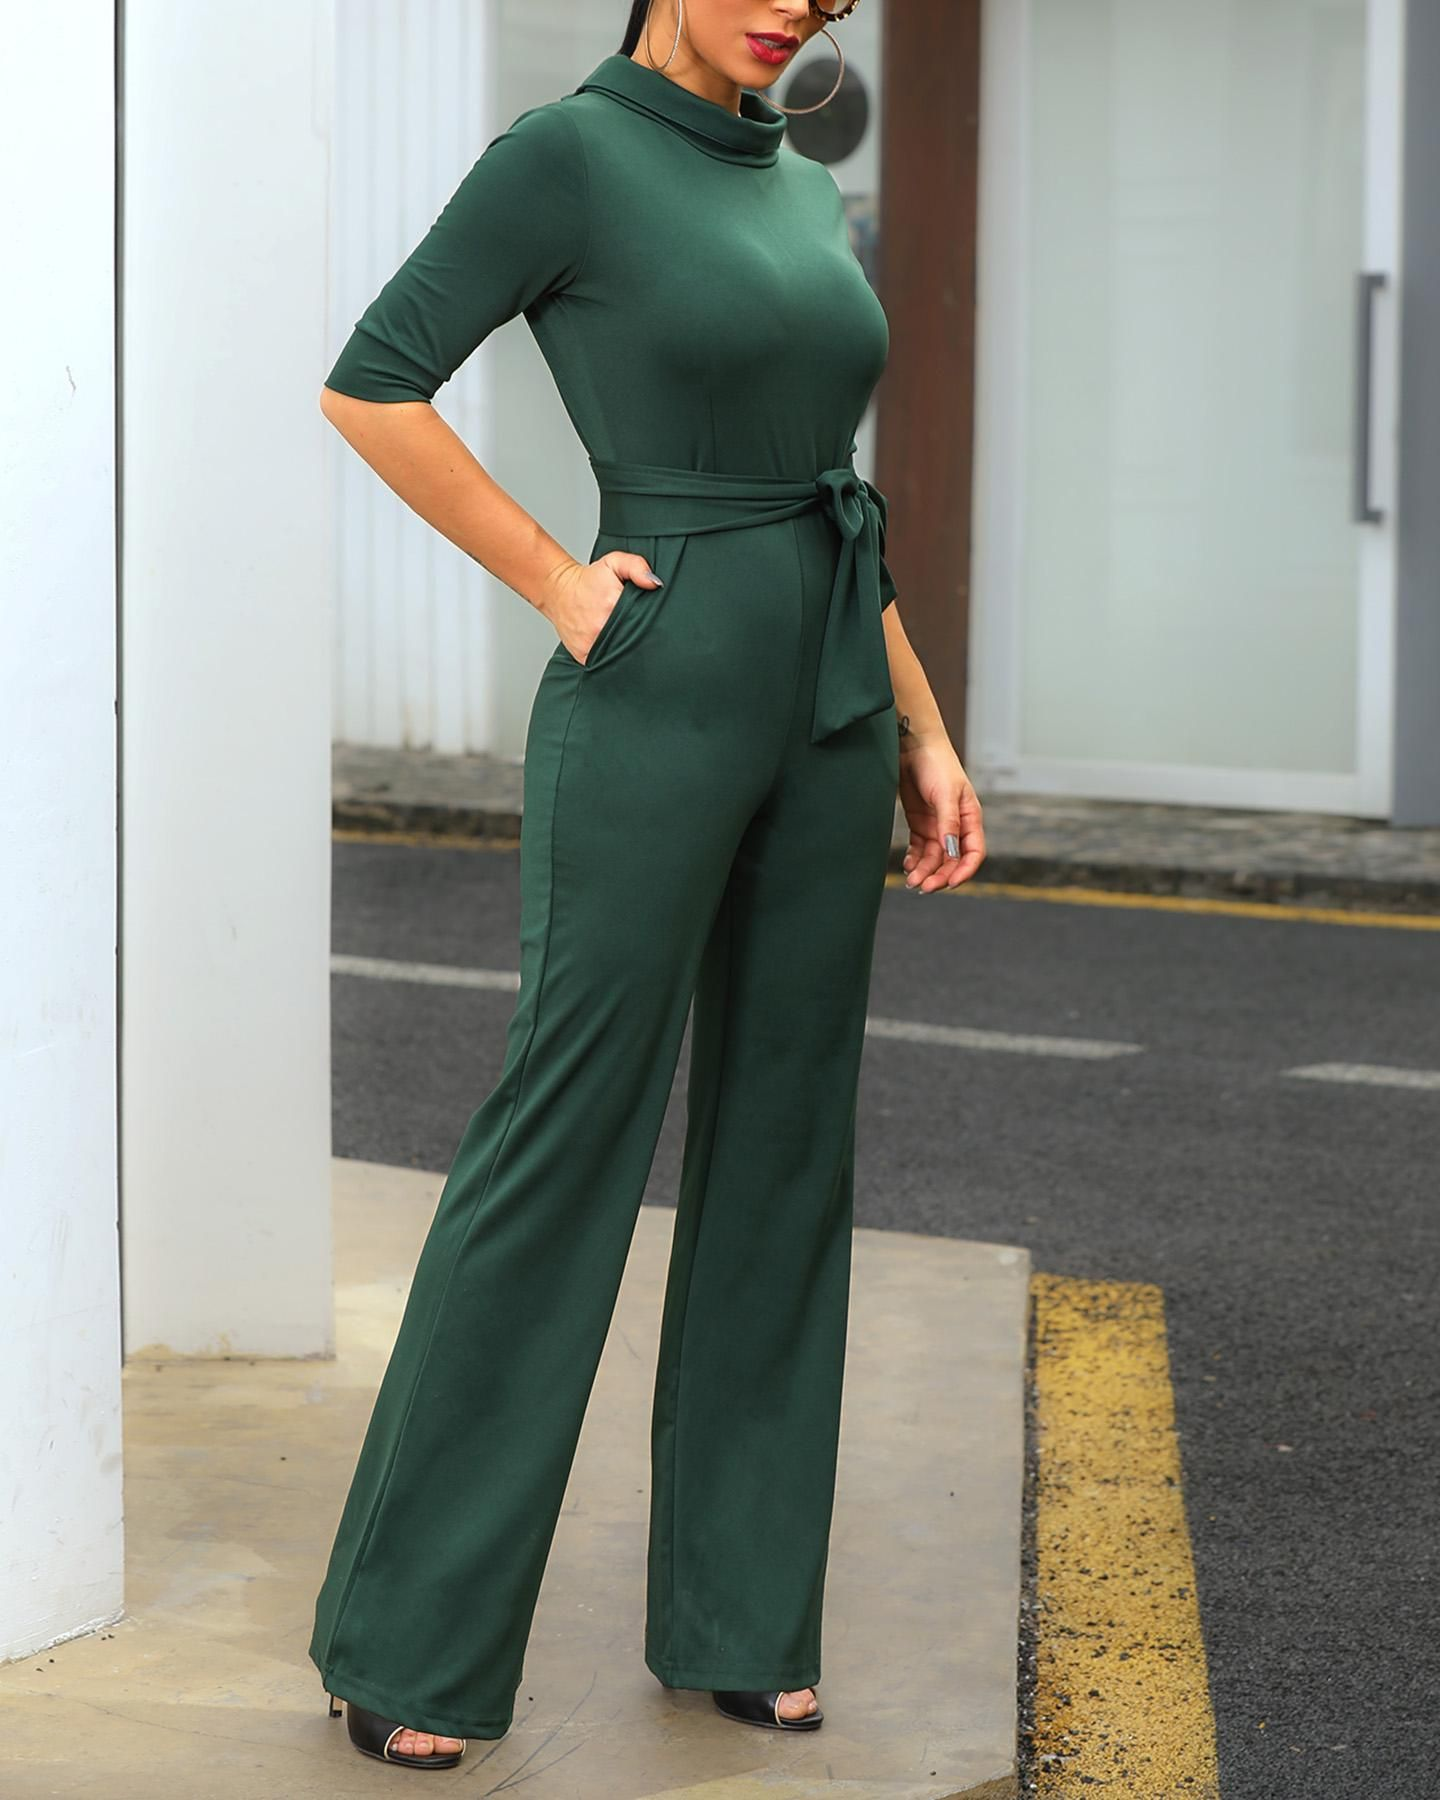 Solid Mock Neck Pocket Design Jumpsuits Lace Dress With Sleeves Clothes Jumpsuits For Women